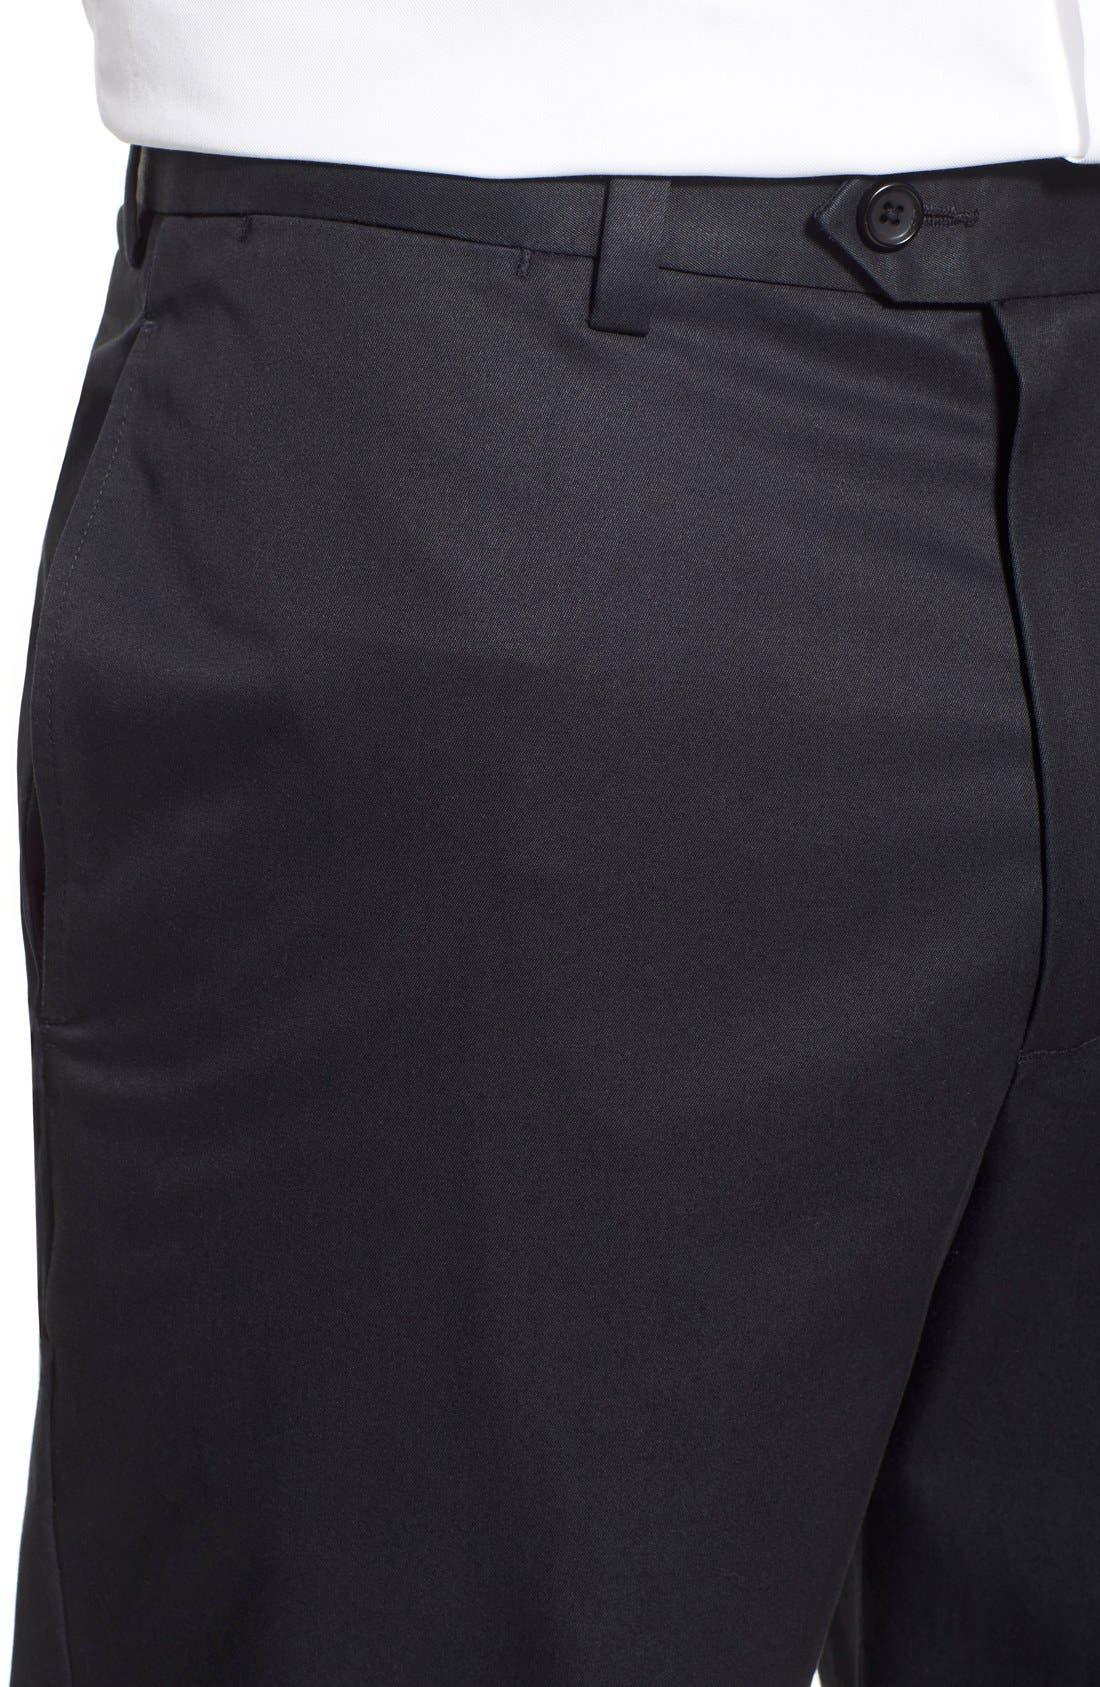 NORDSTROM MEN'S SHOP, Smartcare<sup>™</sup> Classic Supima<sup>®</sup> Cotton Flat Front Trousers, Alternate thumbnail 6, color, BLACK CAVIAR